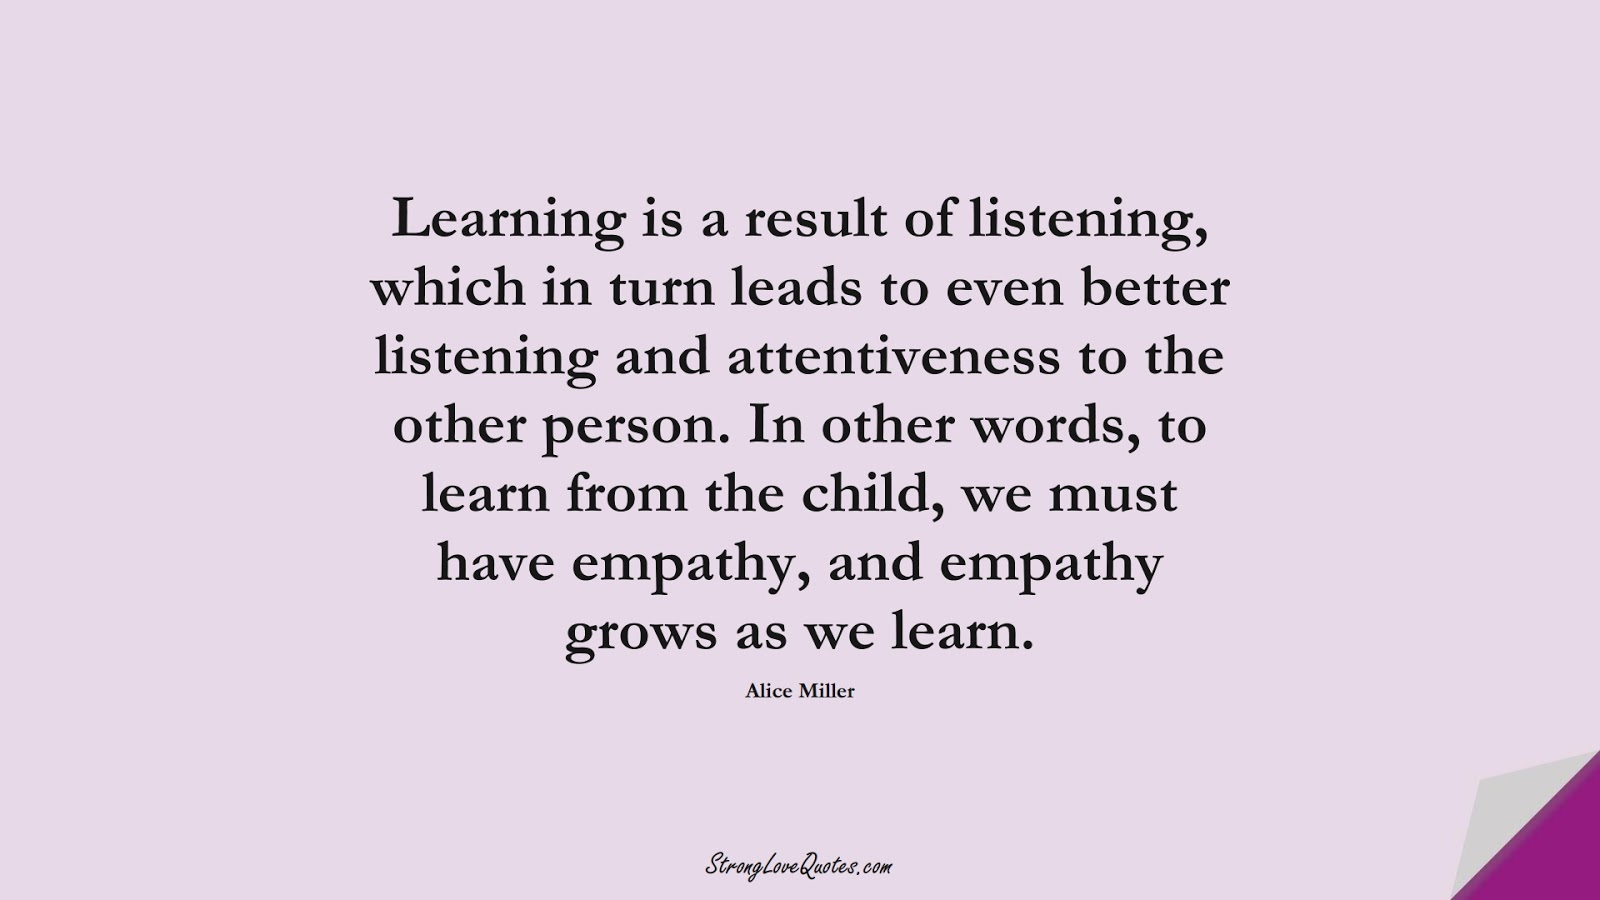 Learning is a result of listening, which in turn leads to even better listening and attentiveness to the other person. In other words, to learn from the child, we must have empathy, and empathy grows as we learn. (Alice Miller);  #EducationQuotes